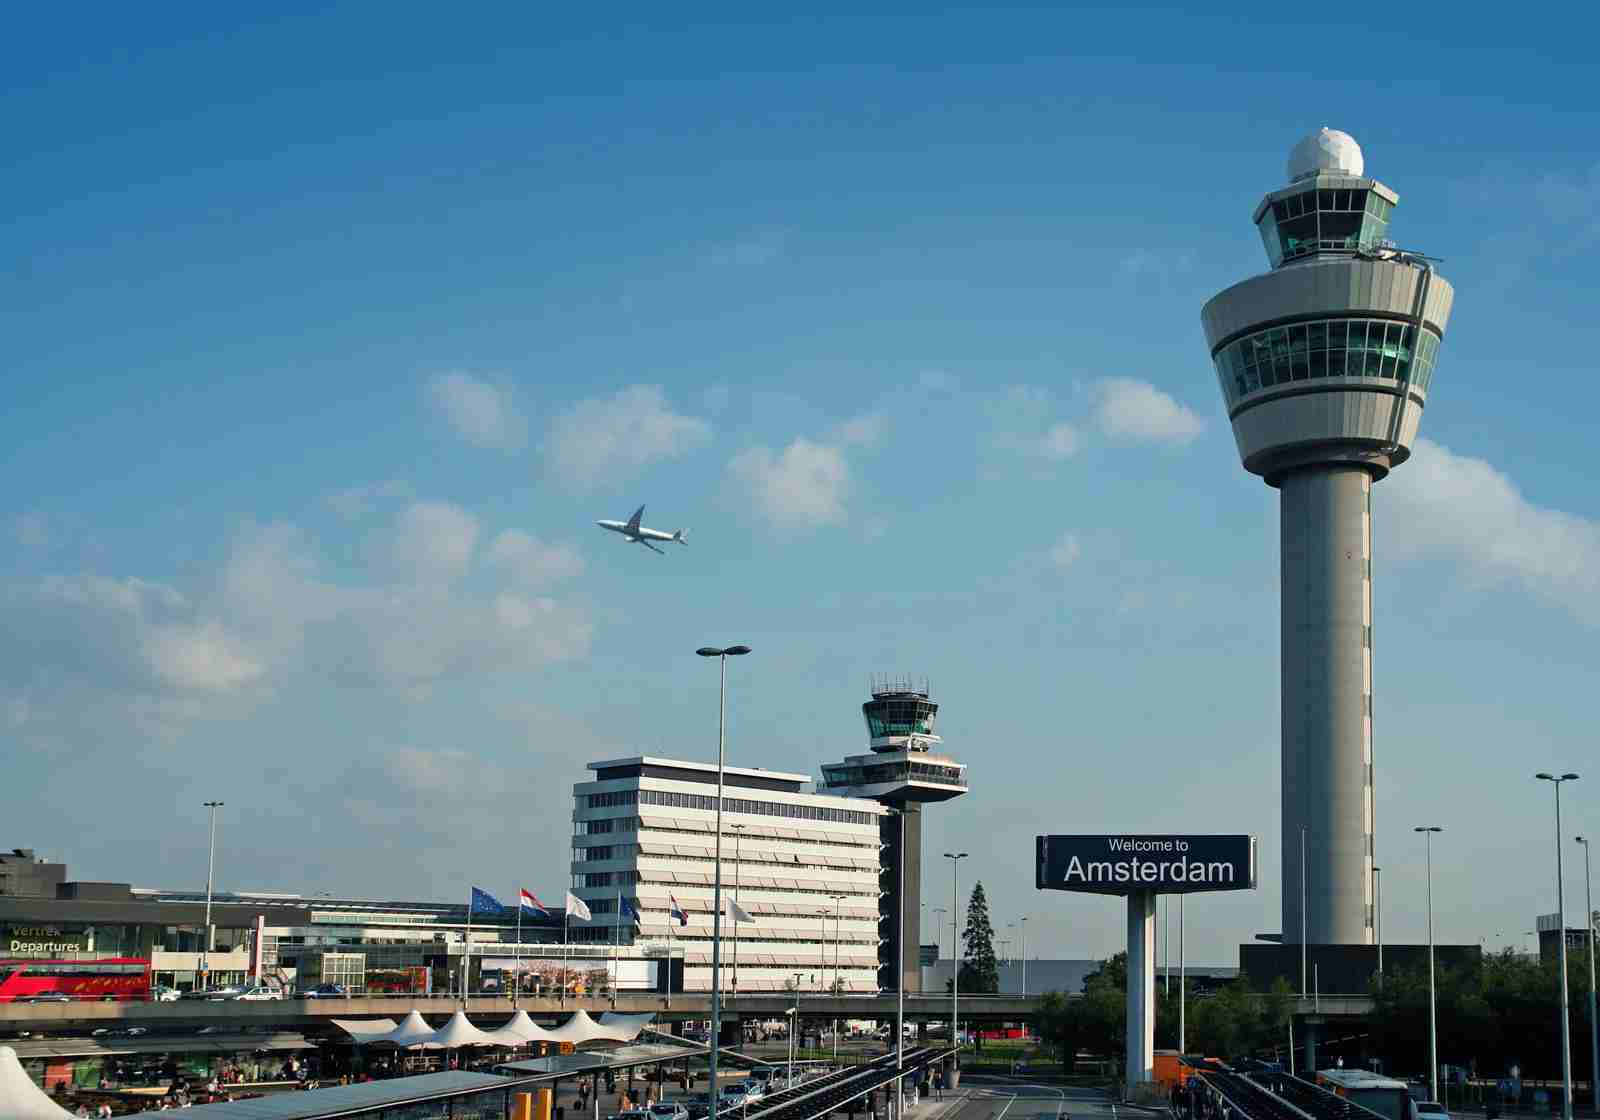 Schiphol Airport in Amsterdam. (Photo by Narvikk / Getty Images)